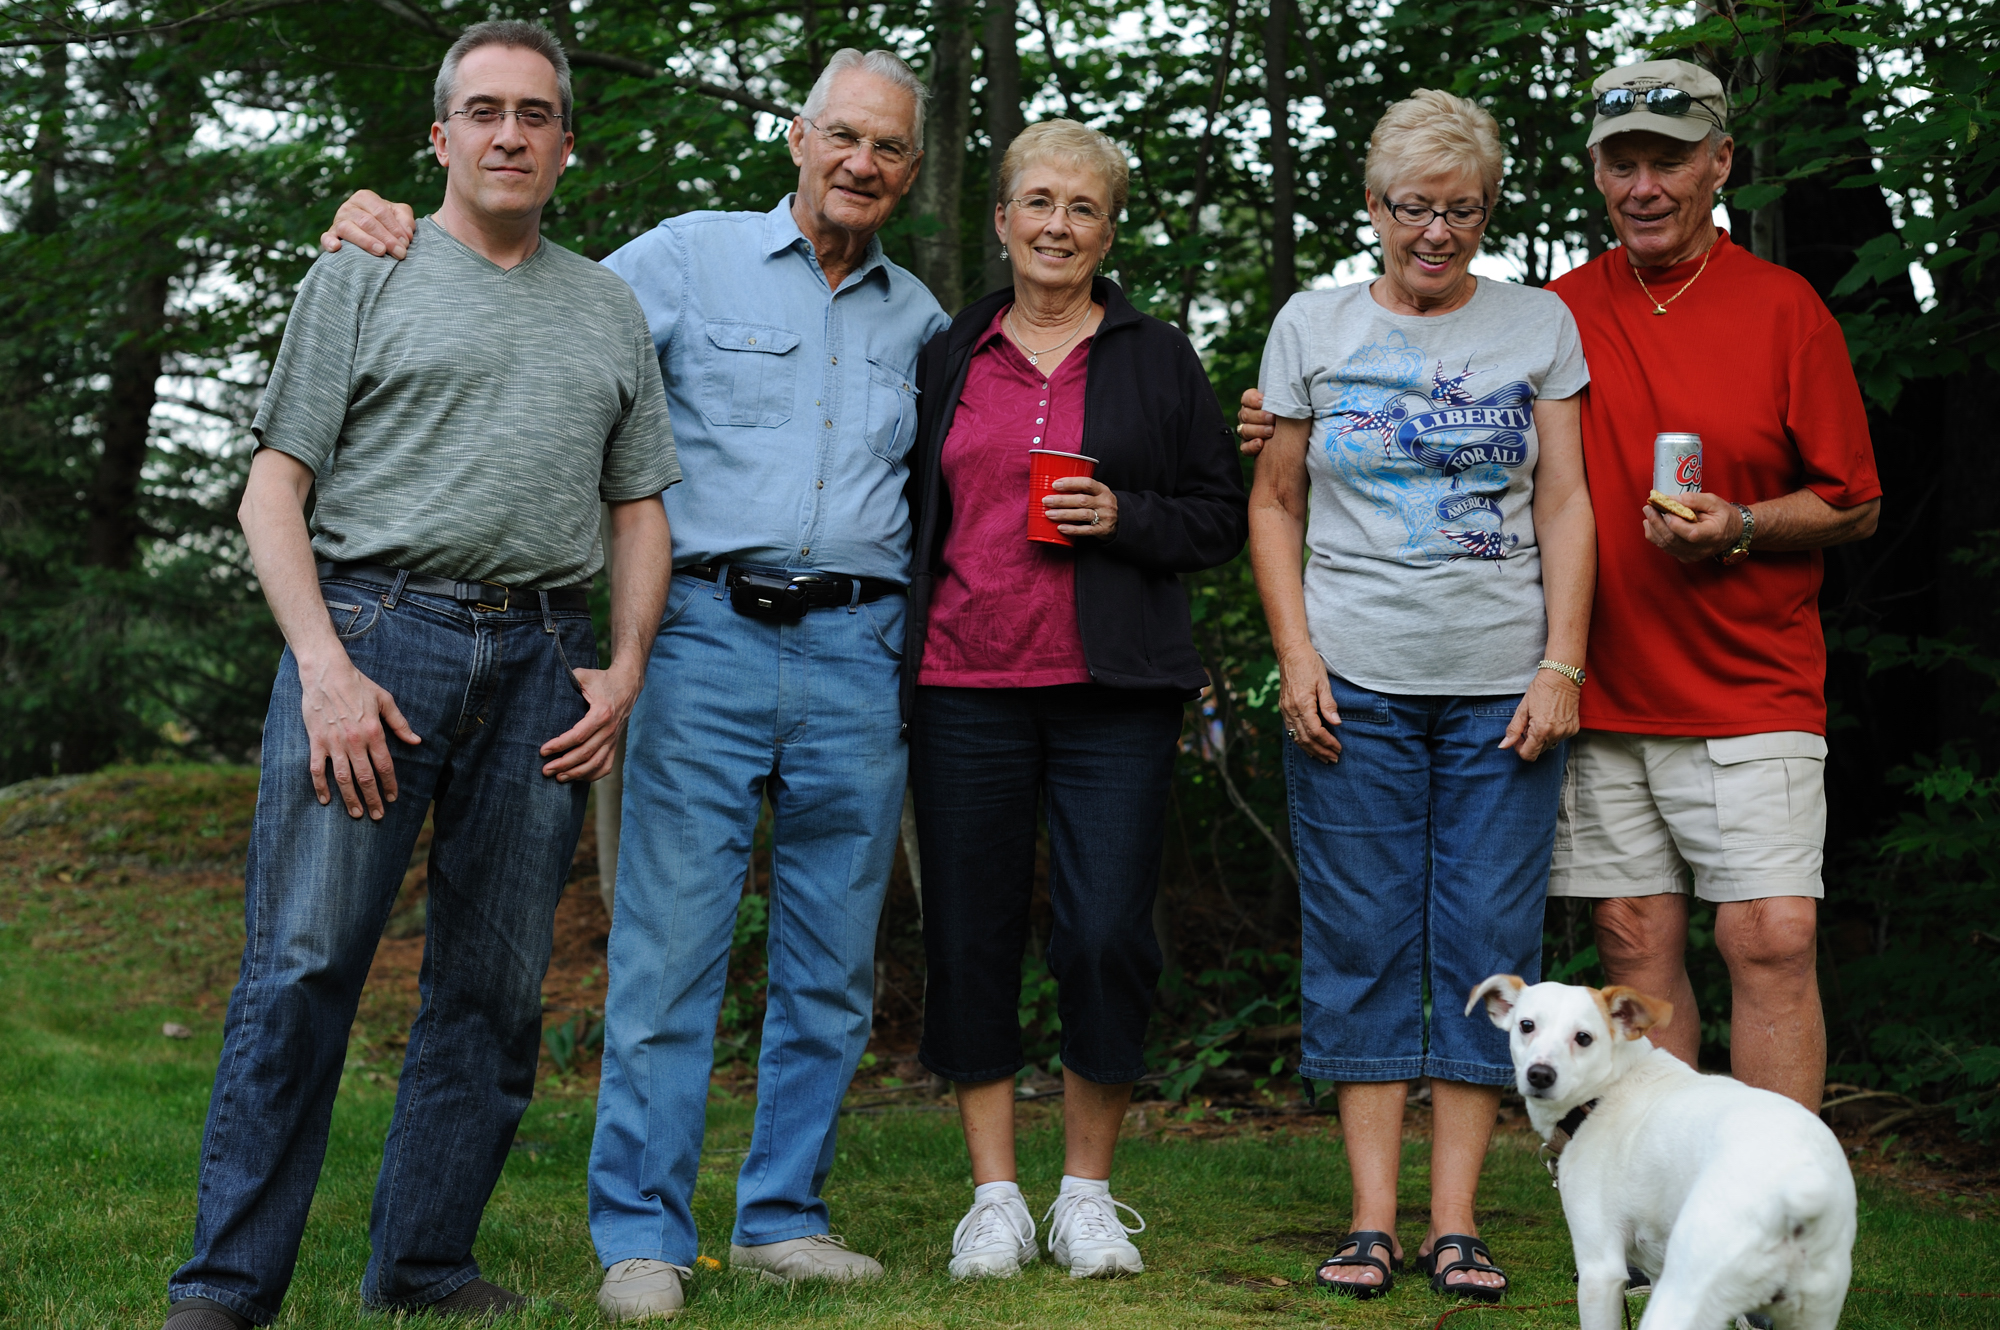 Family posing with dog